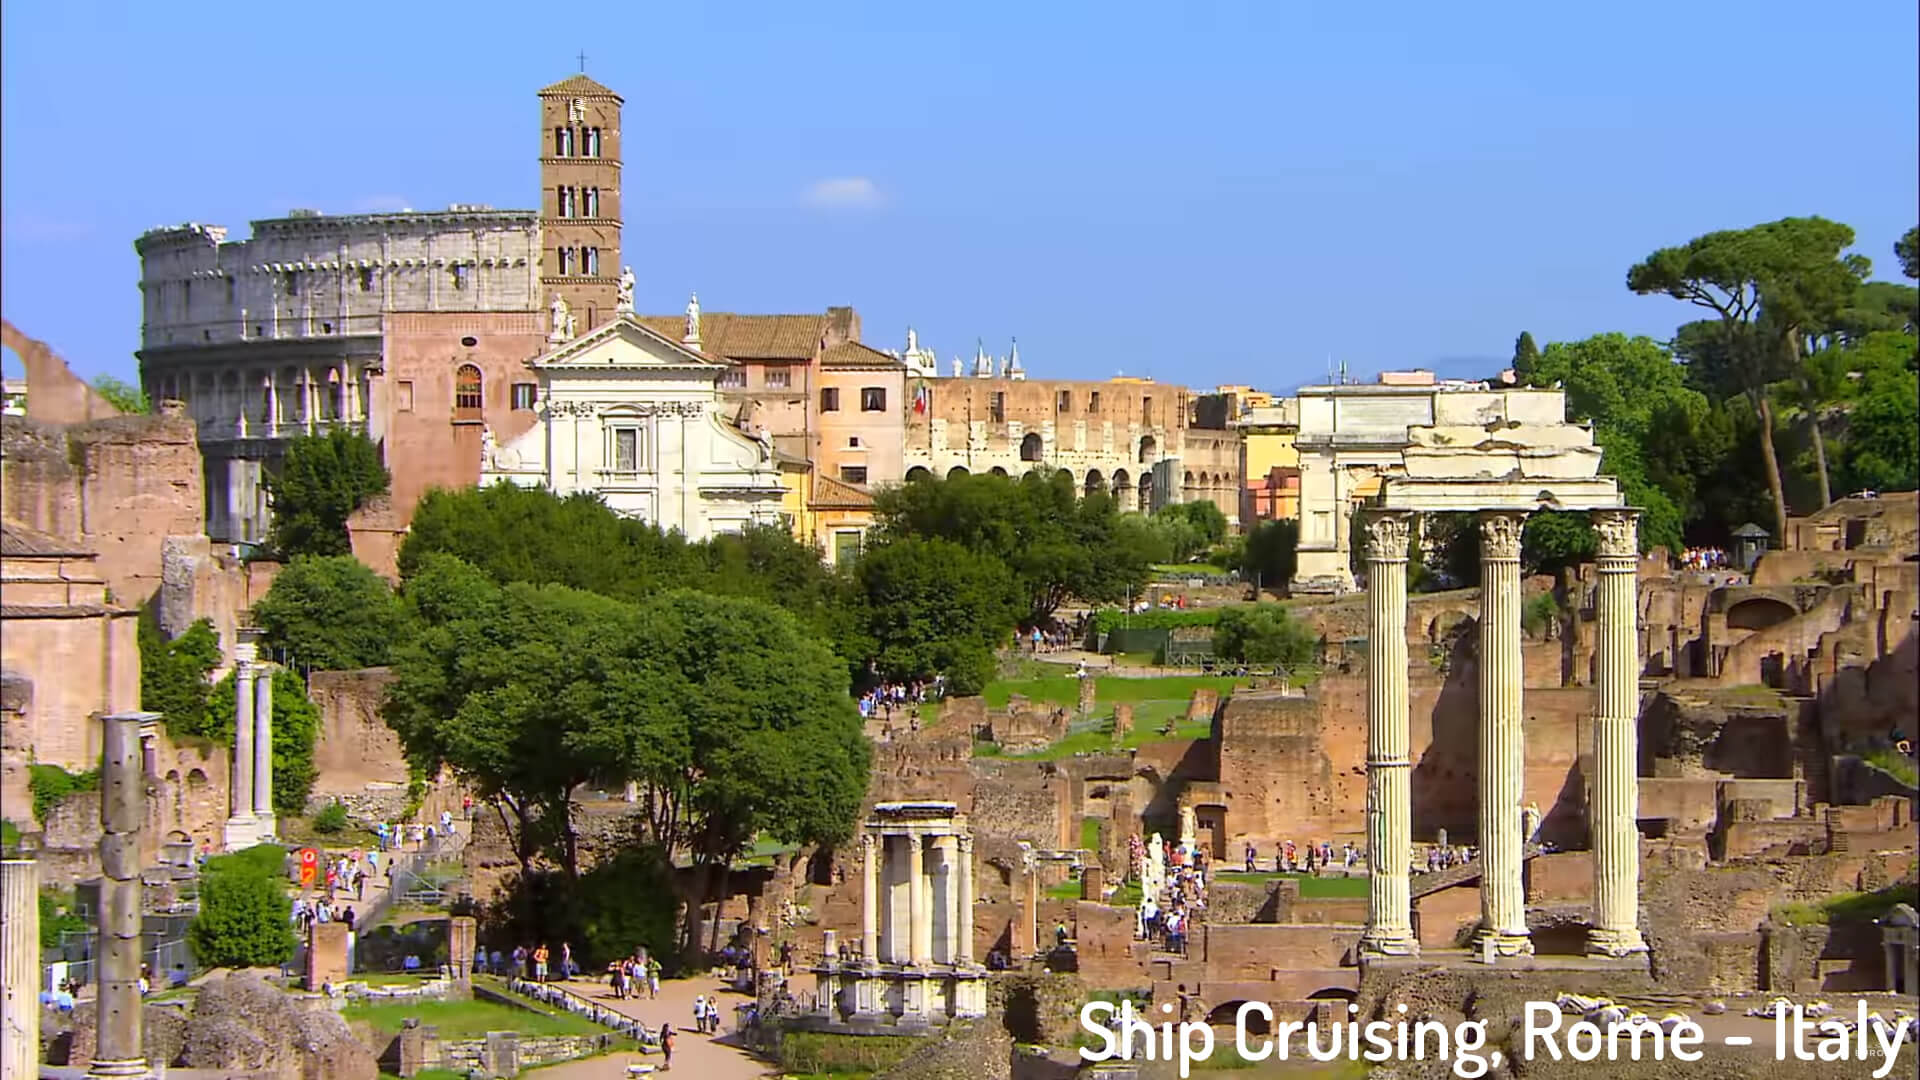 Ship Cruising, Rome - Italy